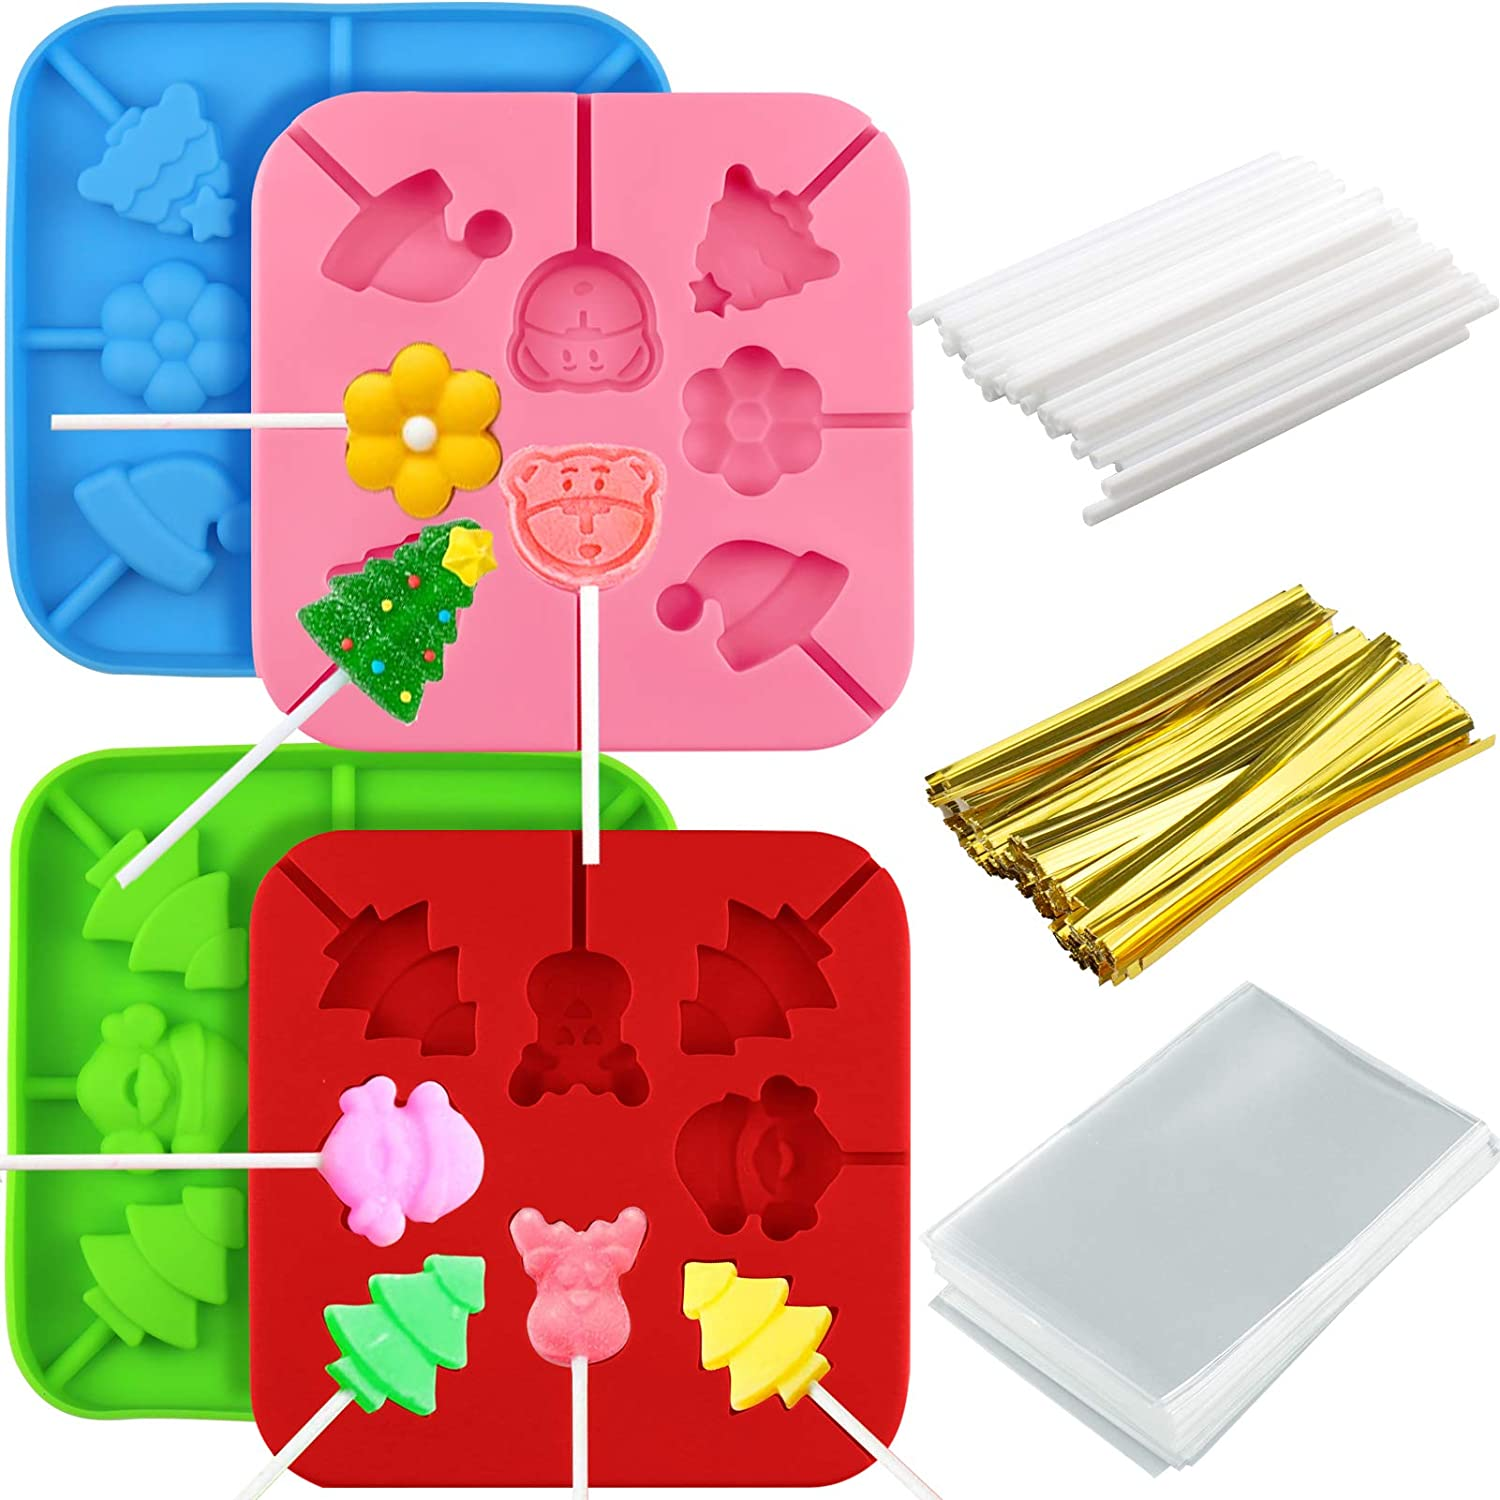 Palksky 4pcs Christmas Candy Molds Silicone Lollipop Molds Chocolate Lollypop Sucker Mold including elk Santa Claus Christmas tree Xmas hat Bear flower with Lollipop Sticks, Treat Bags and Twist Ties